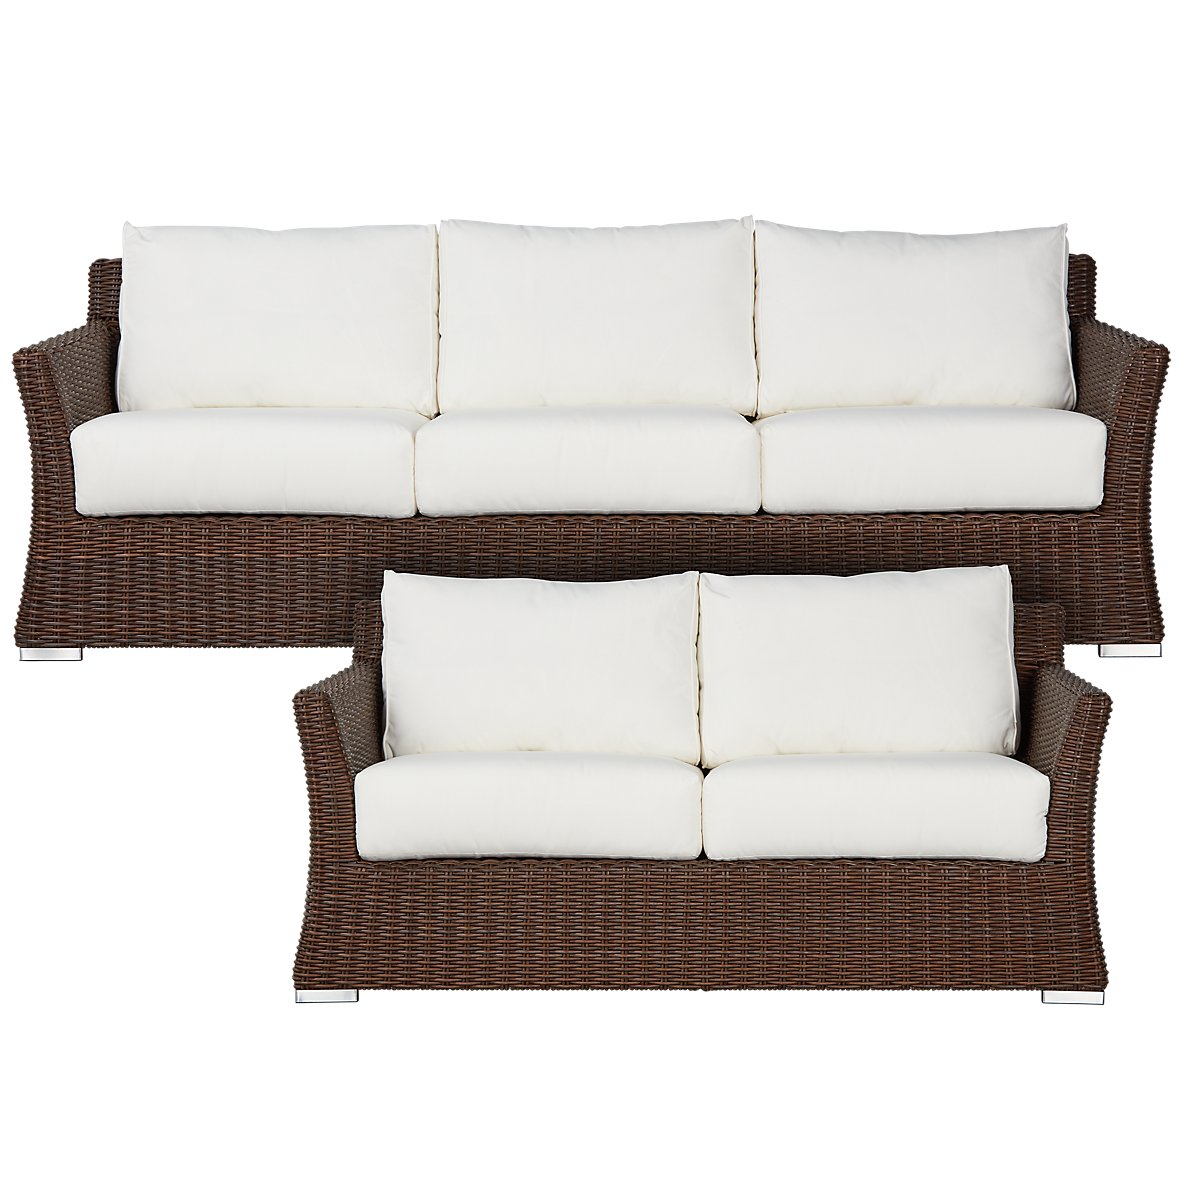 City Furniture: Southport White Woven Outdoor Living Room Set